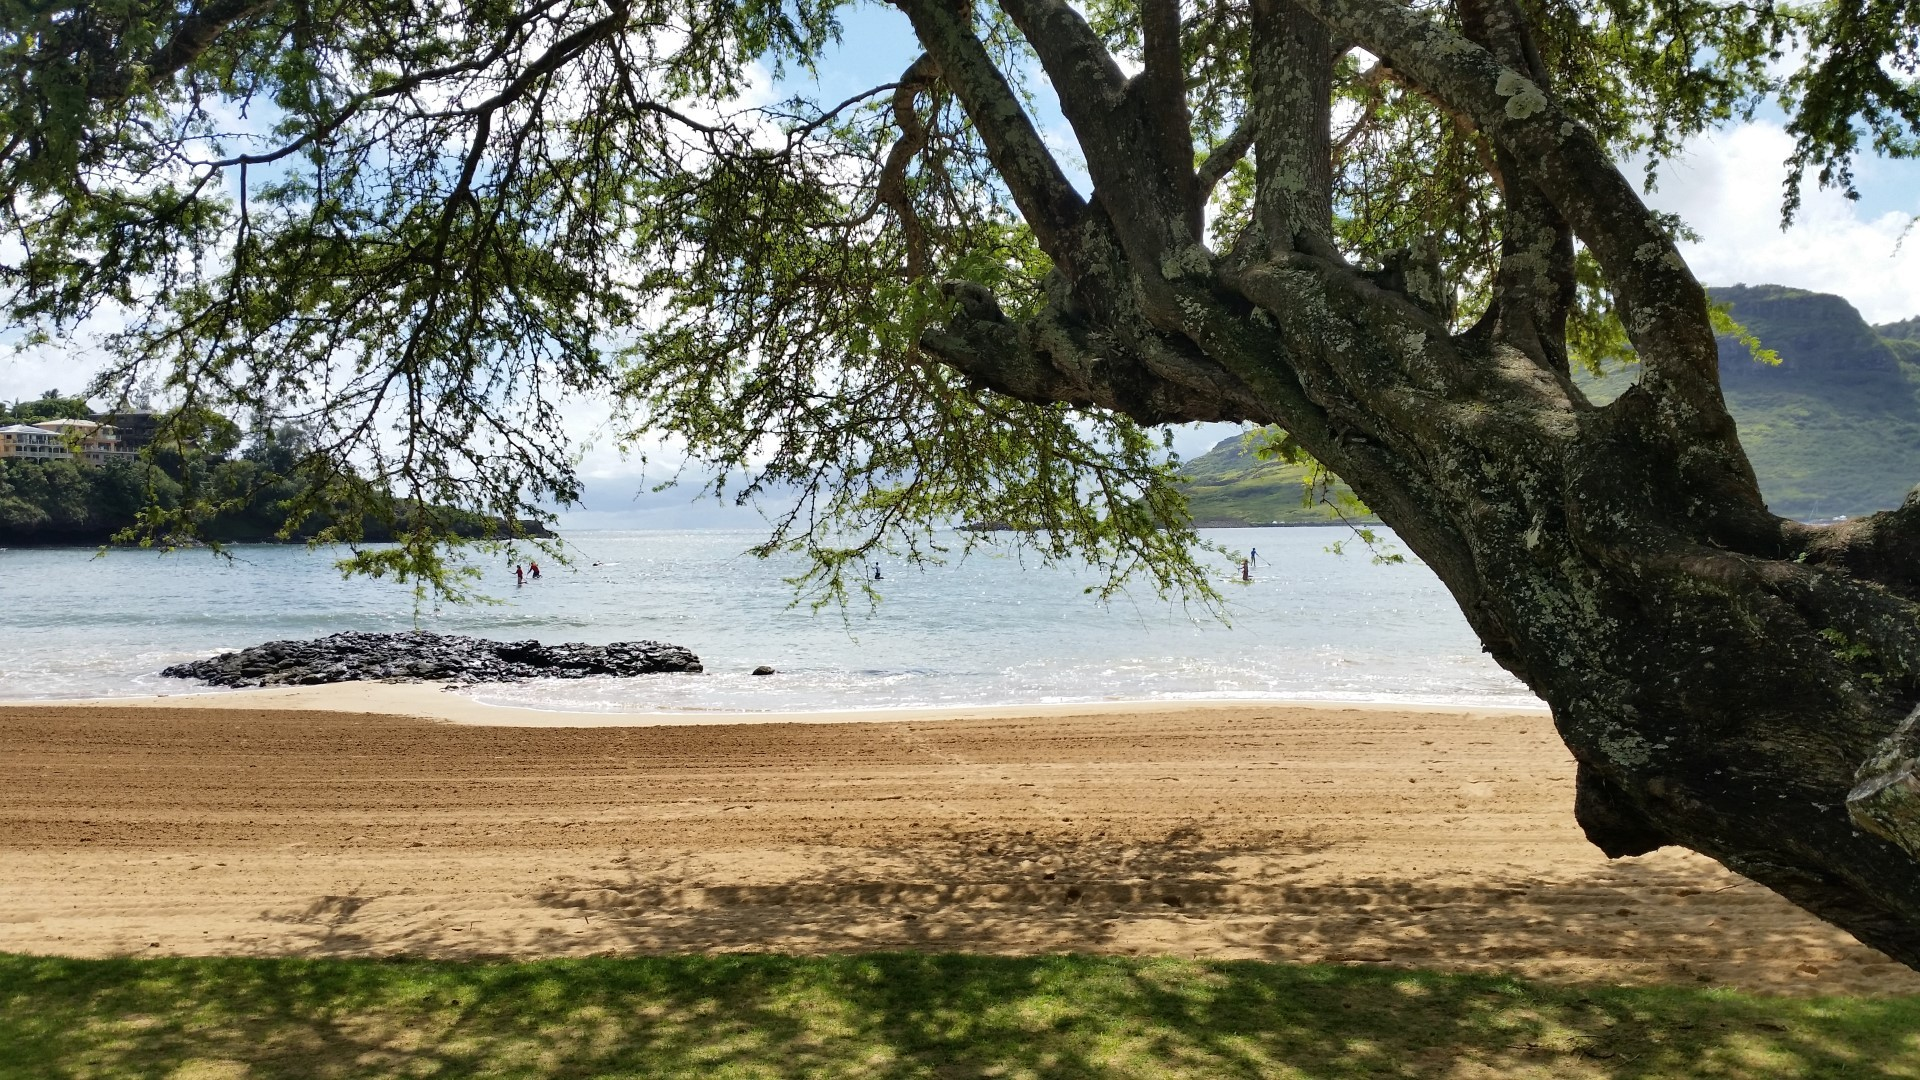 Hawaii Tag 26: Kalapaki Beach, Poipu Beach (2014-10-21)